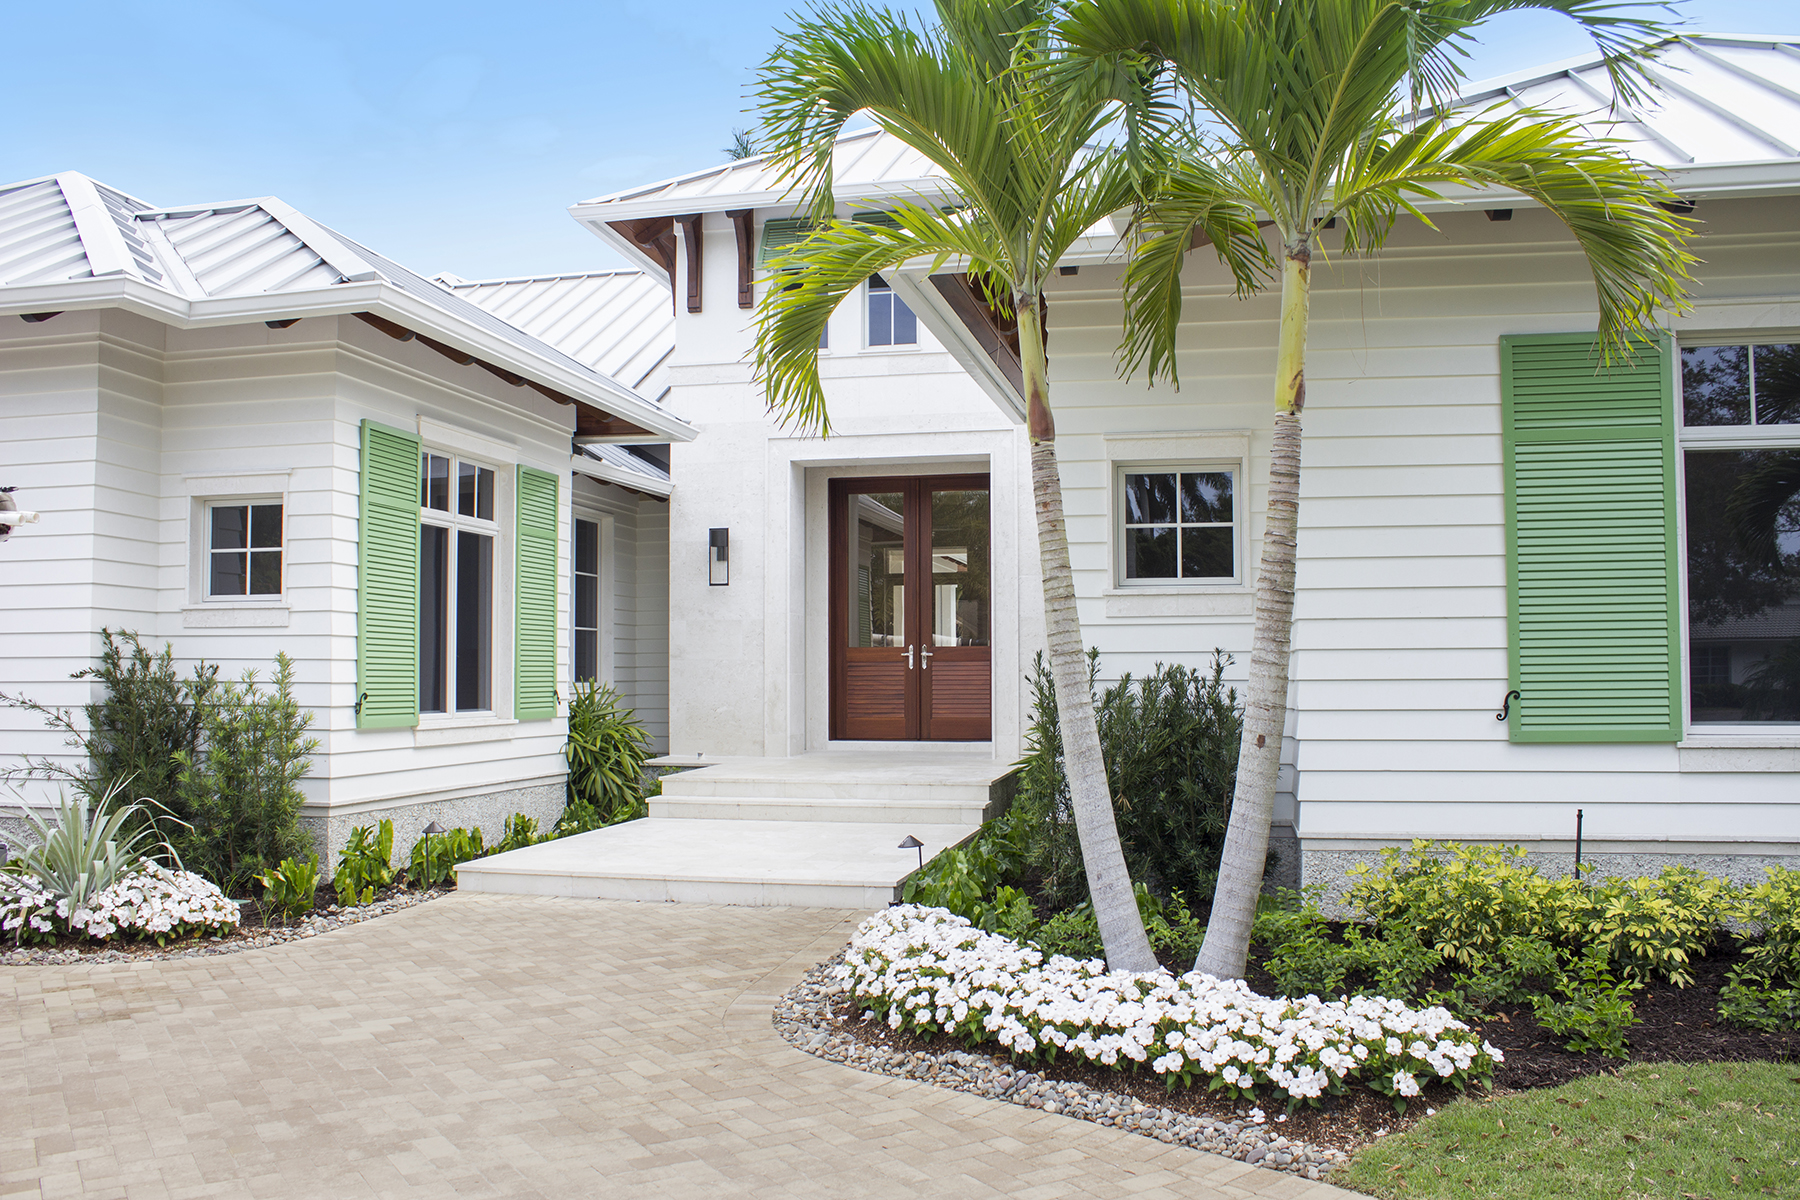 Single Family Home for Sale at MOORINGS 3020 Crayton Rd, Naples, Florida 34103 United States